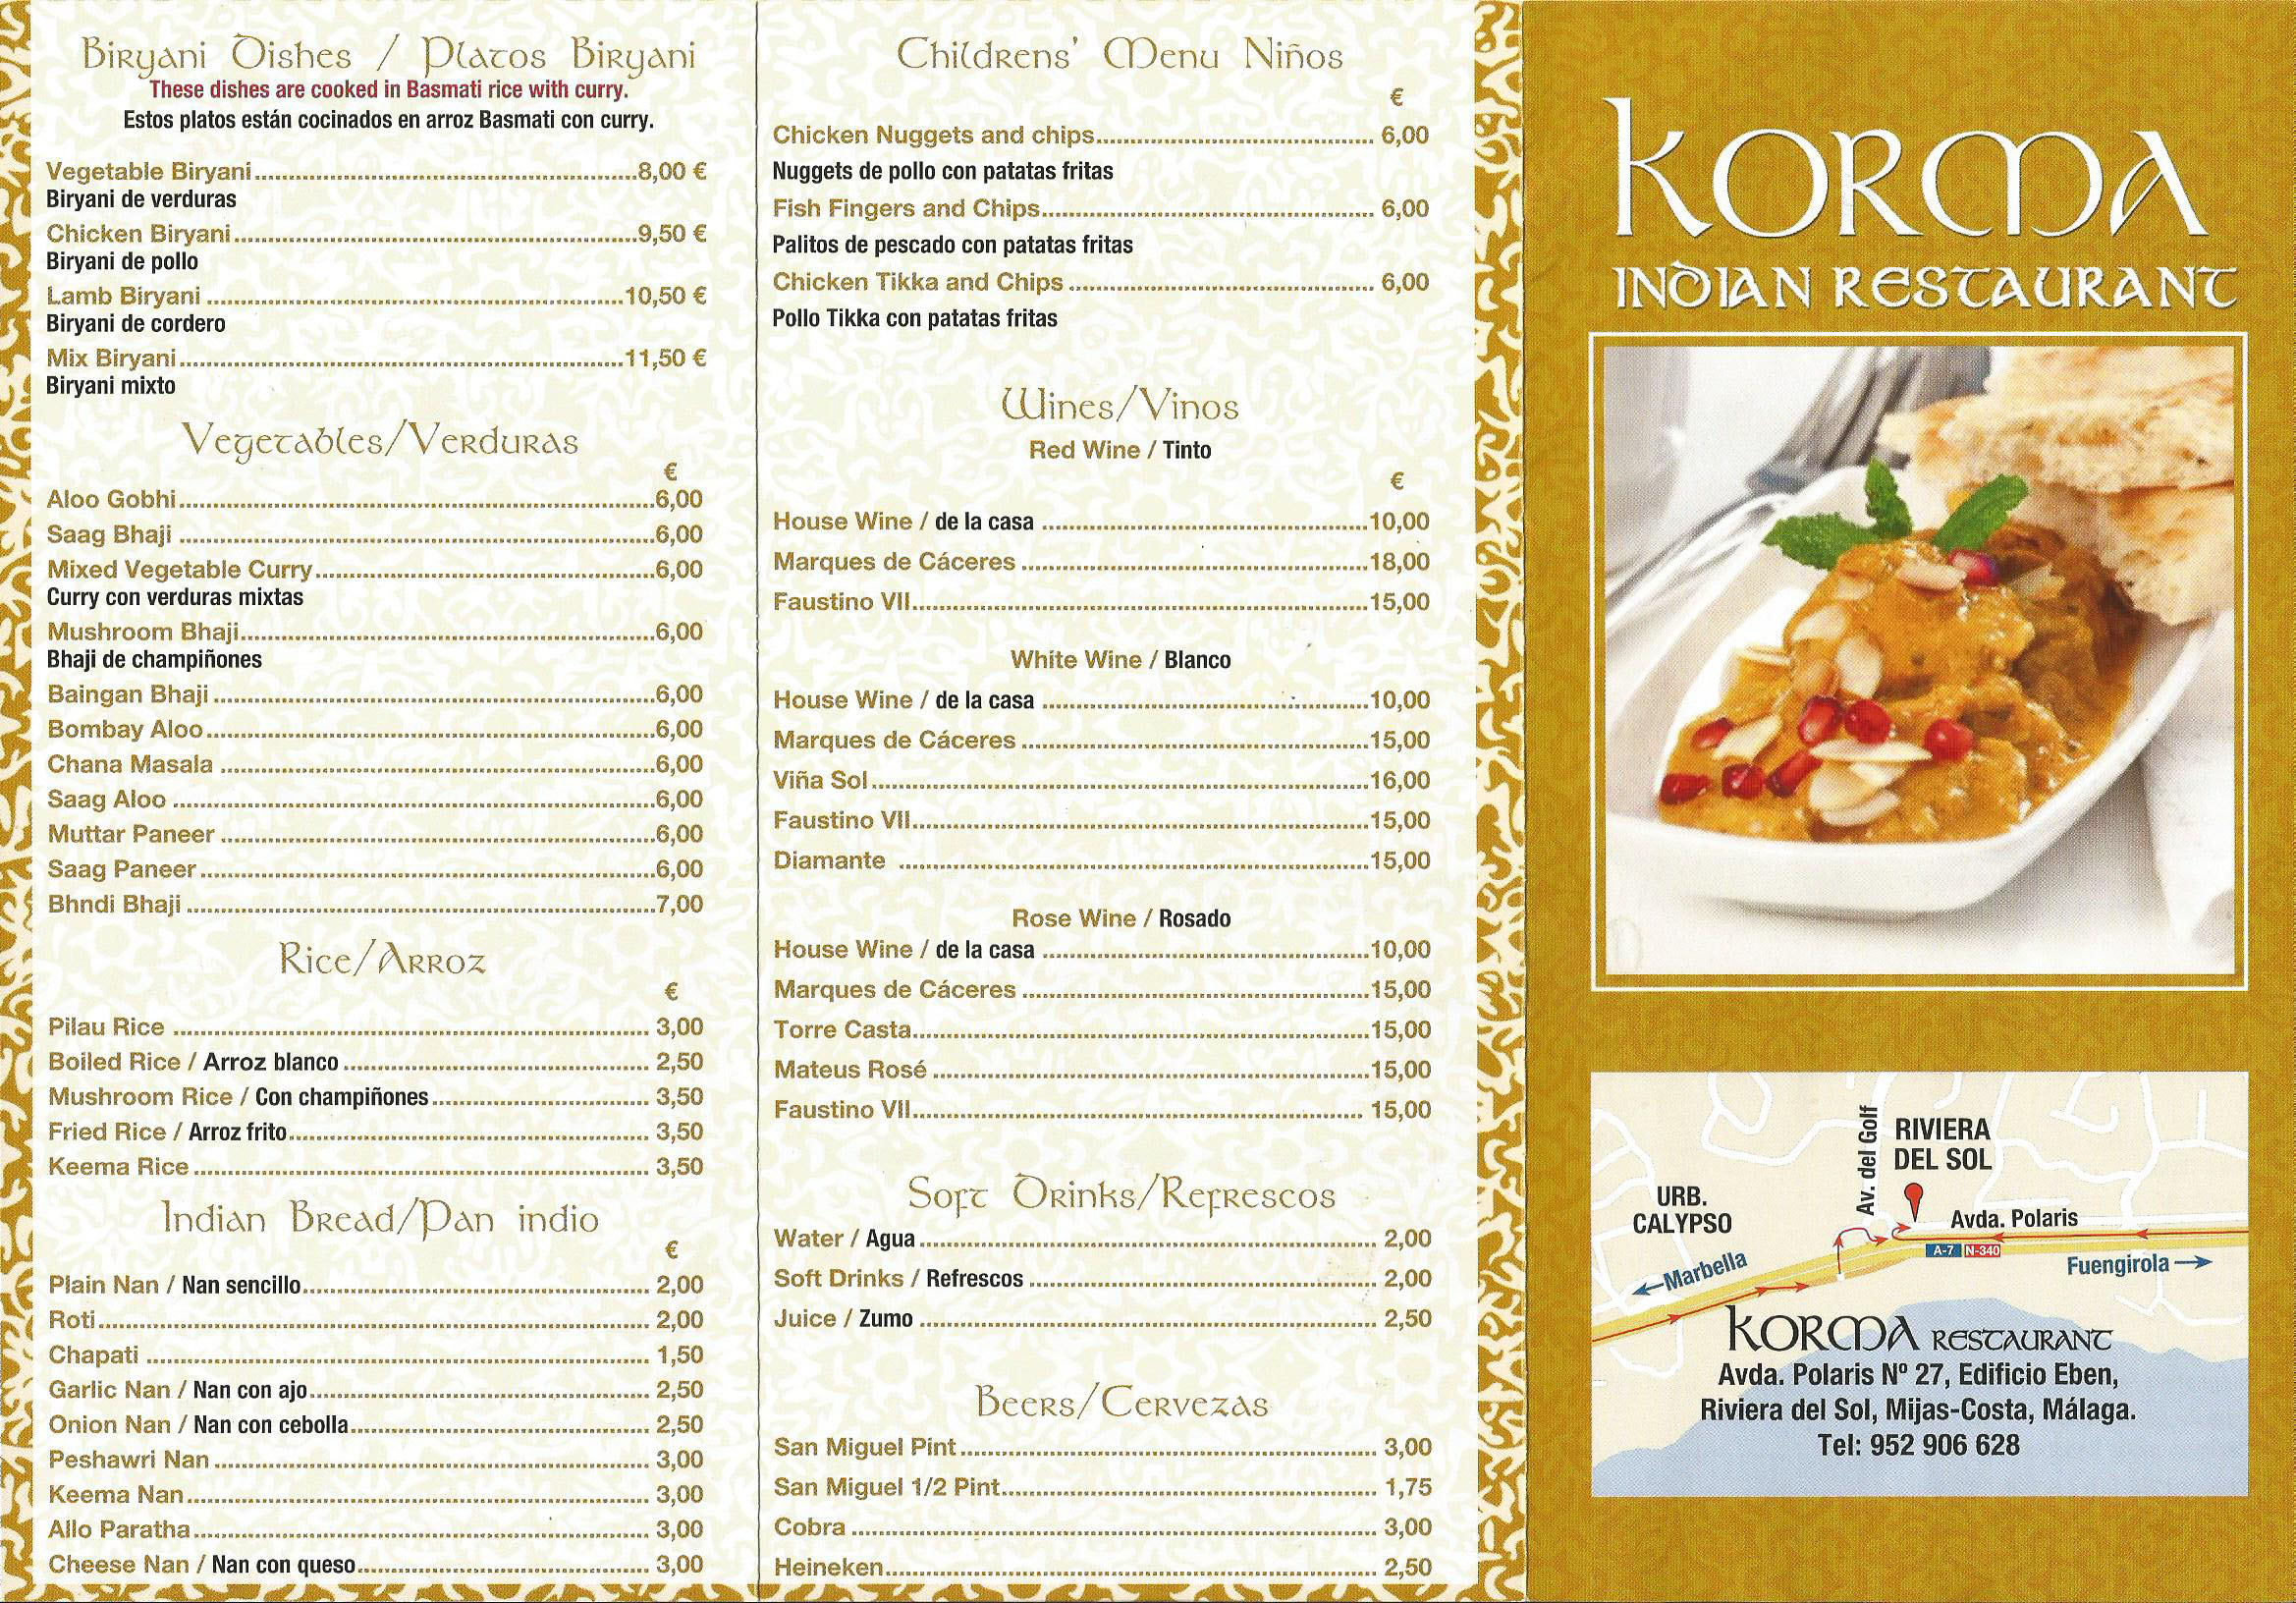 Indian Restaurant Korma